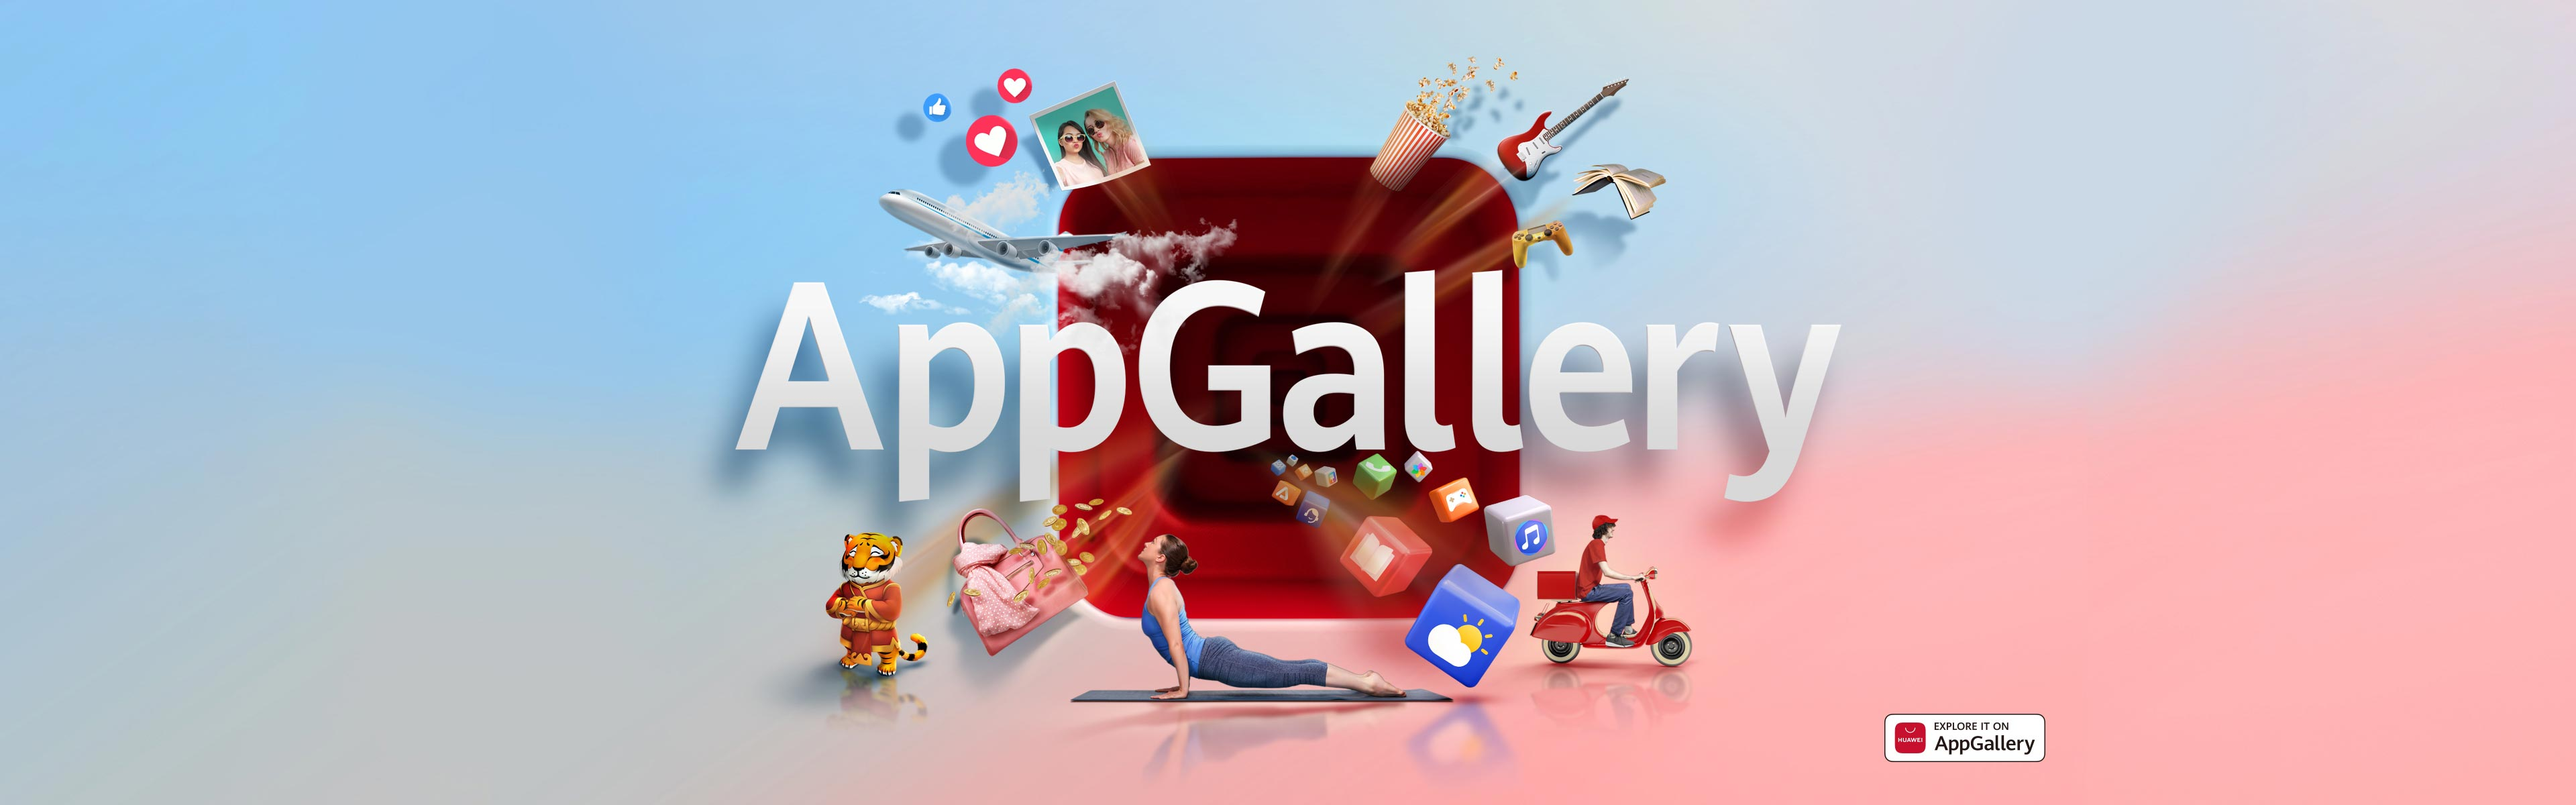 appgalley